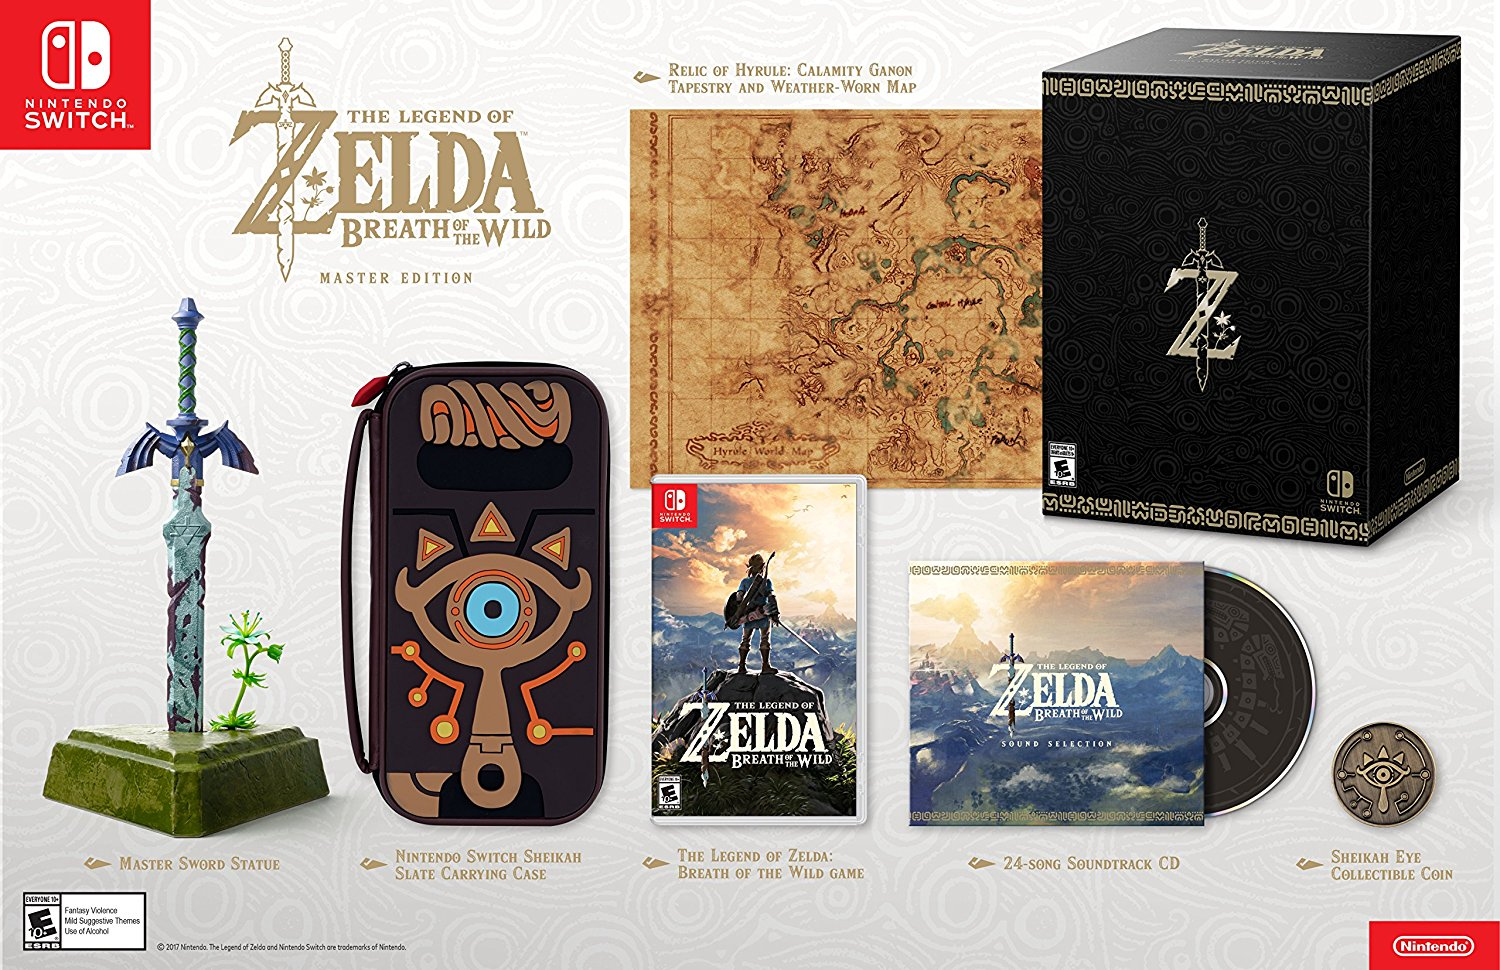 Breath of the Wild Master Edition